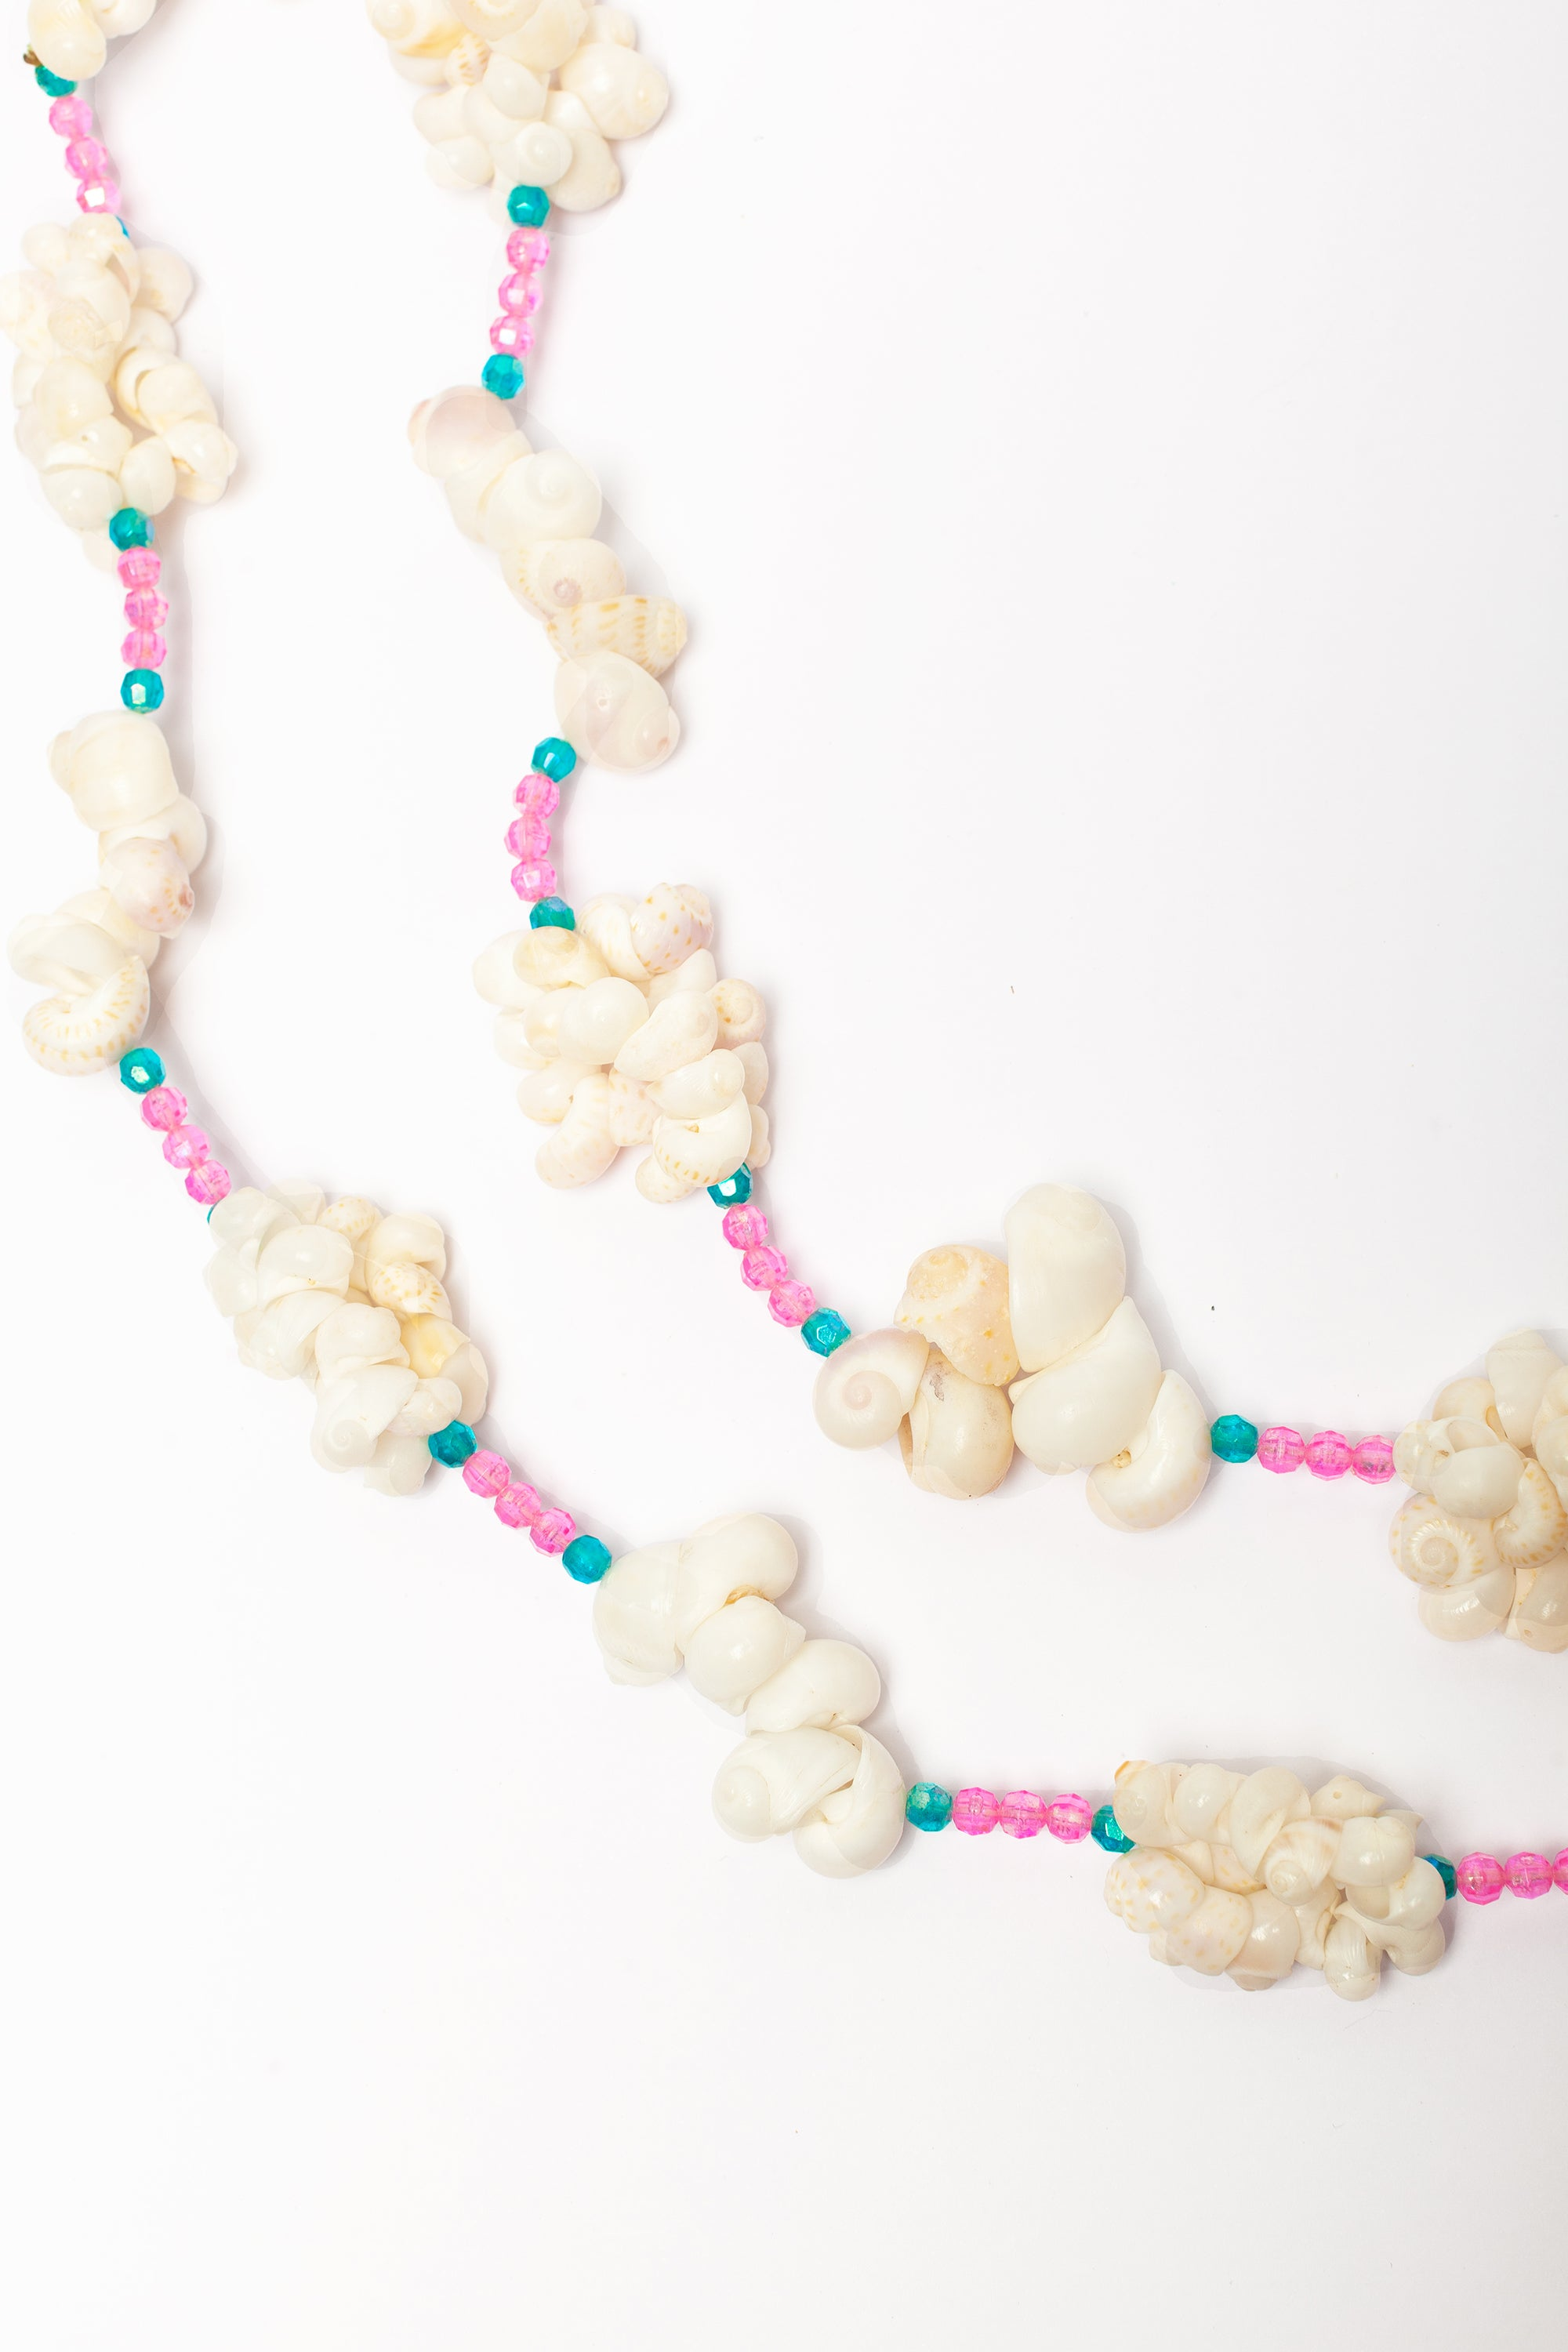 Vintage <br> 60's shell necklace with pink beads